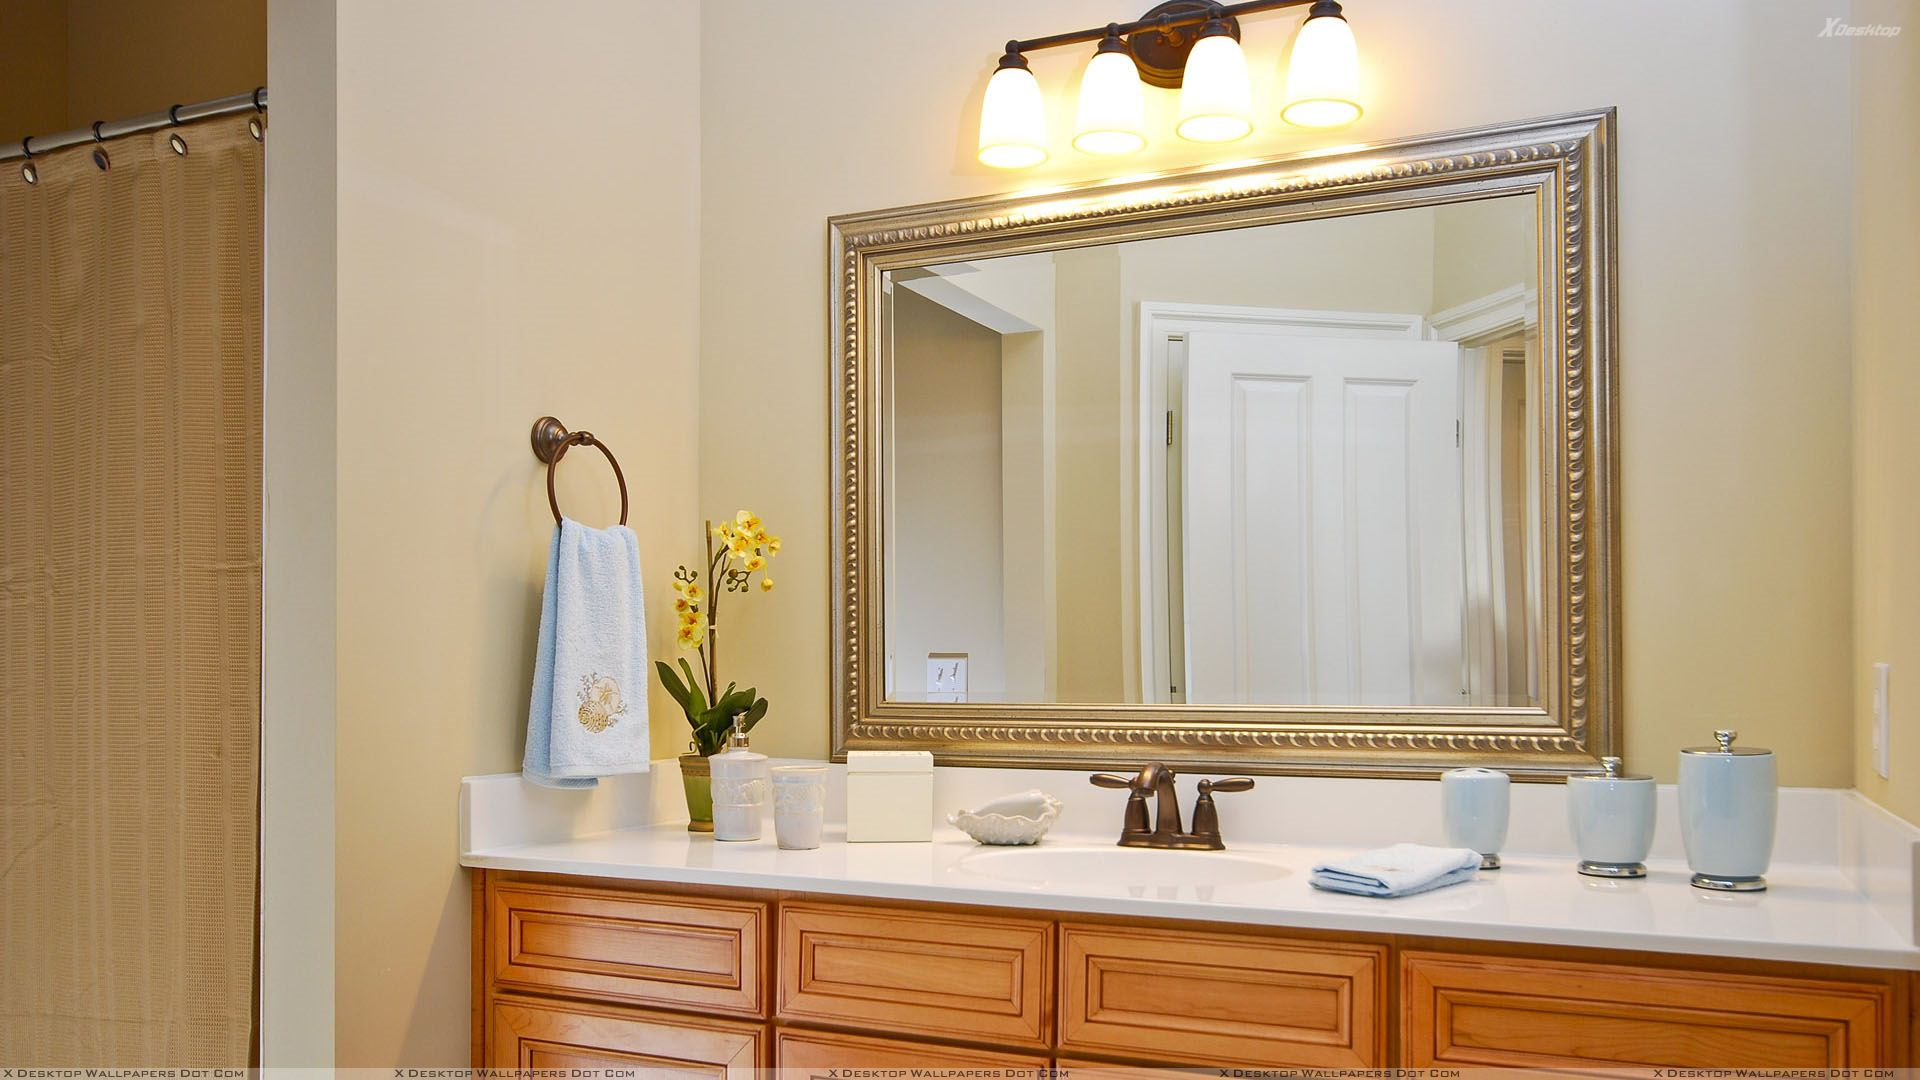 How to frame mirror in bathroom